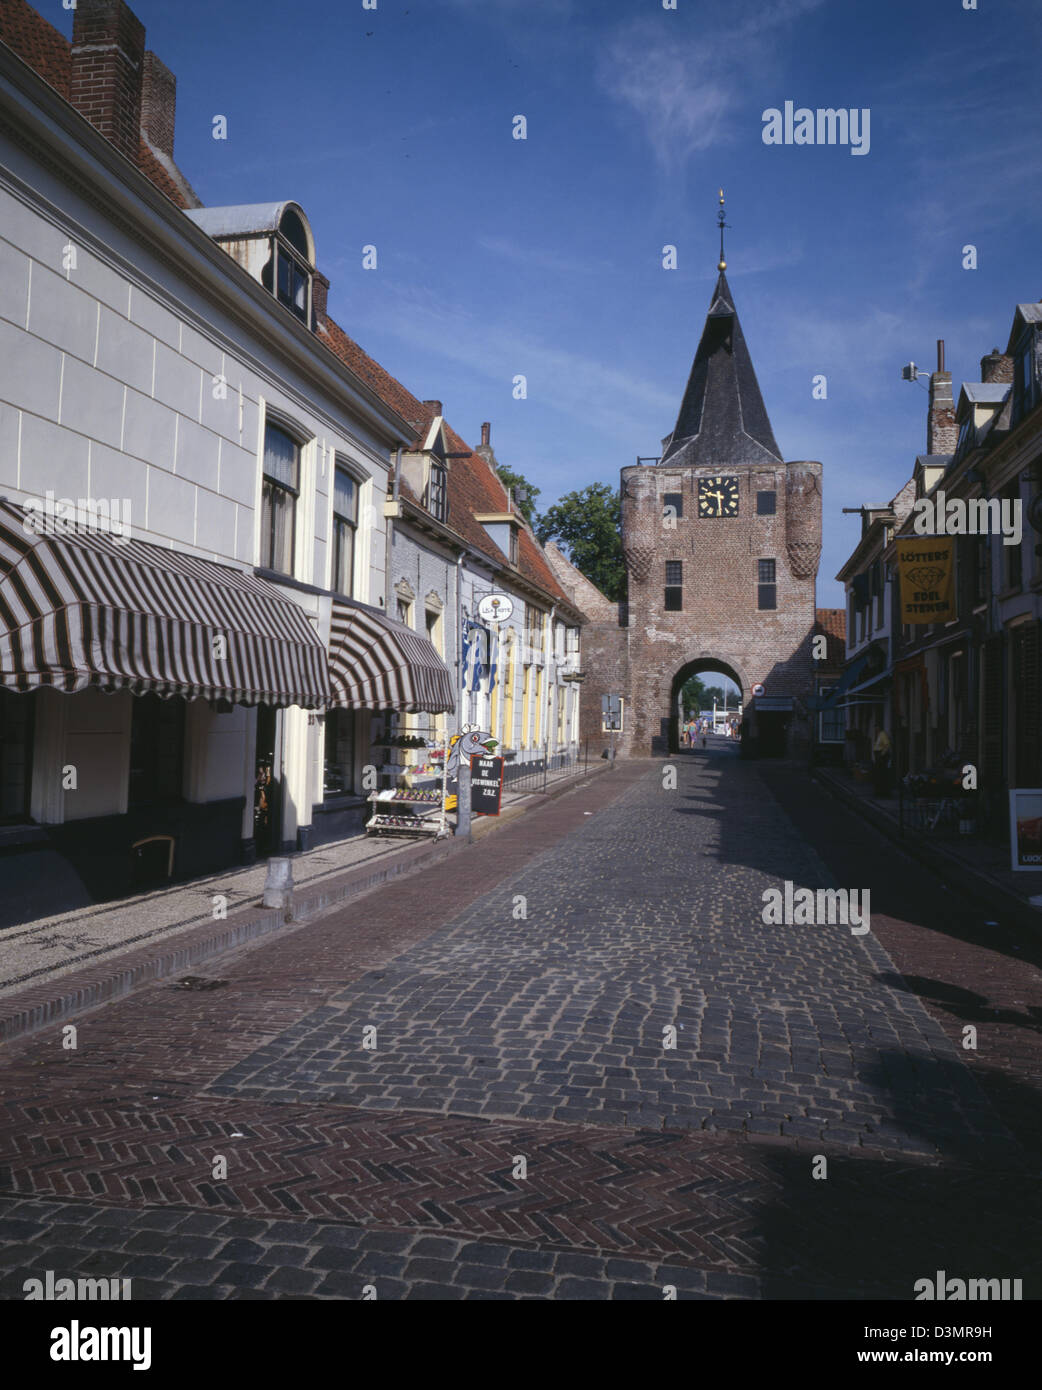 mainstreet in Elburg, Vischpoort, Holland, Netherlands, - Stock Image